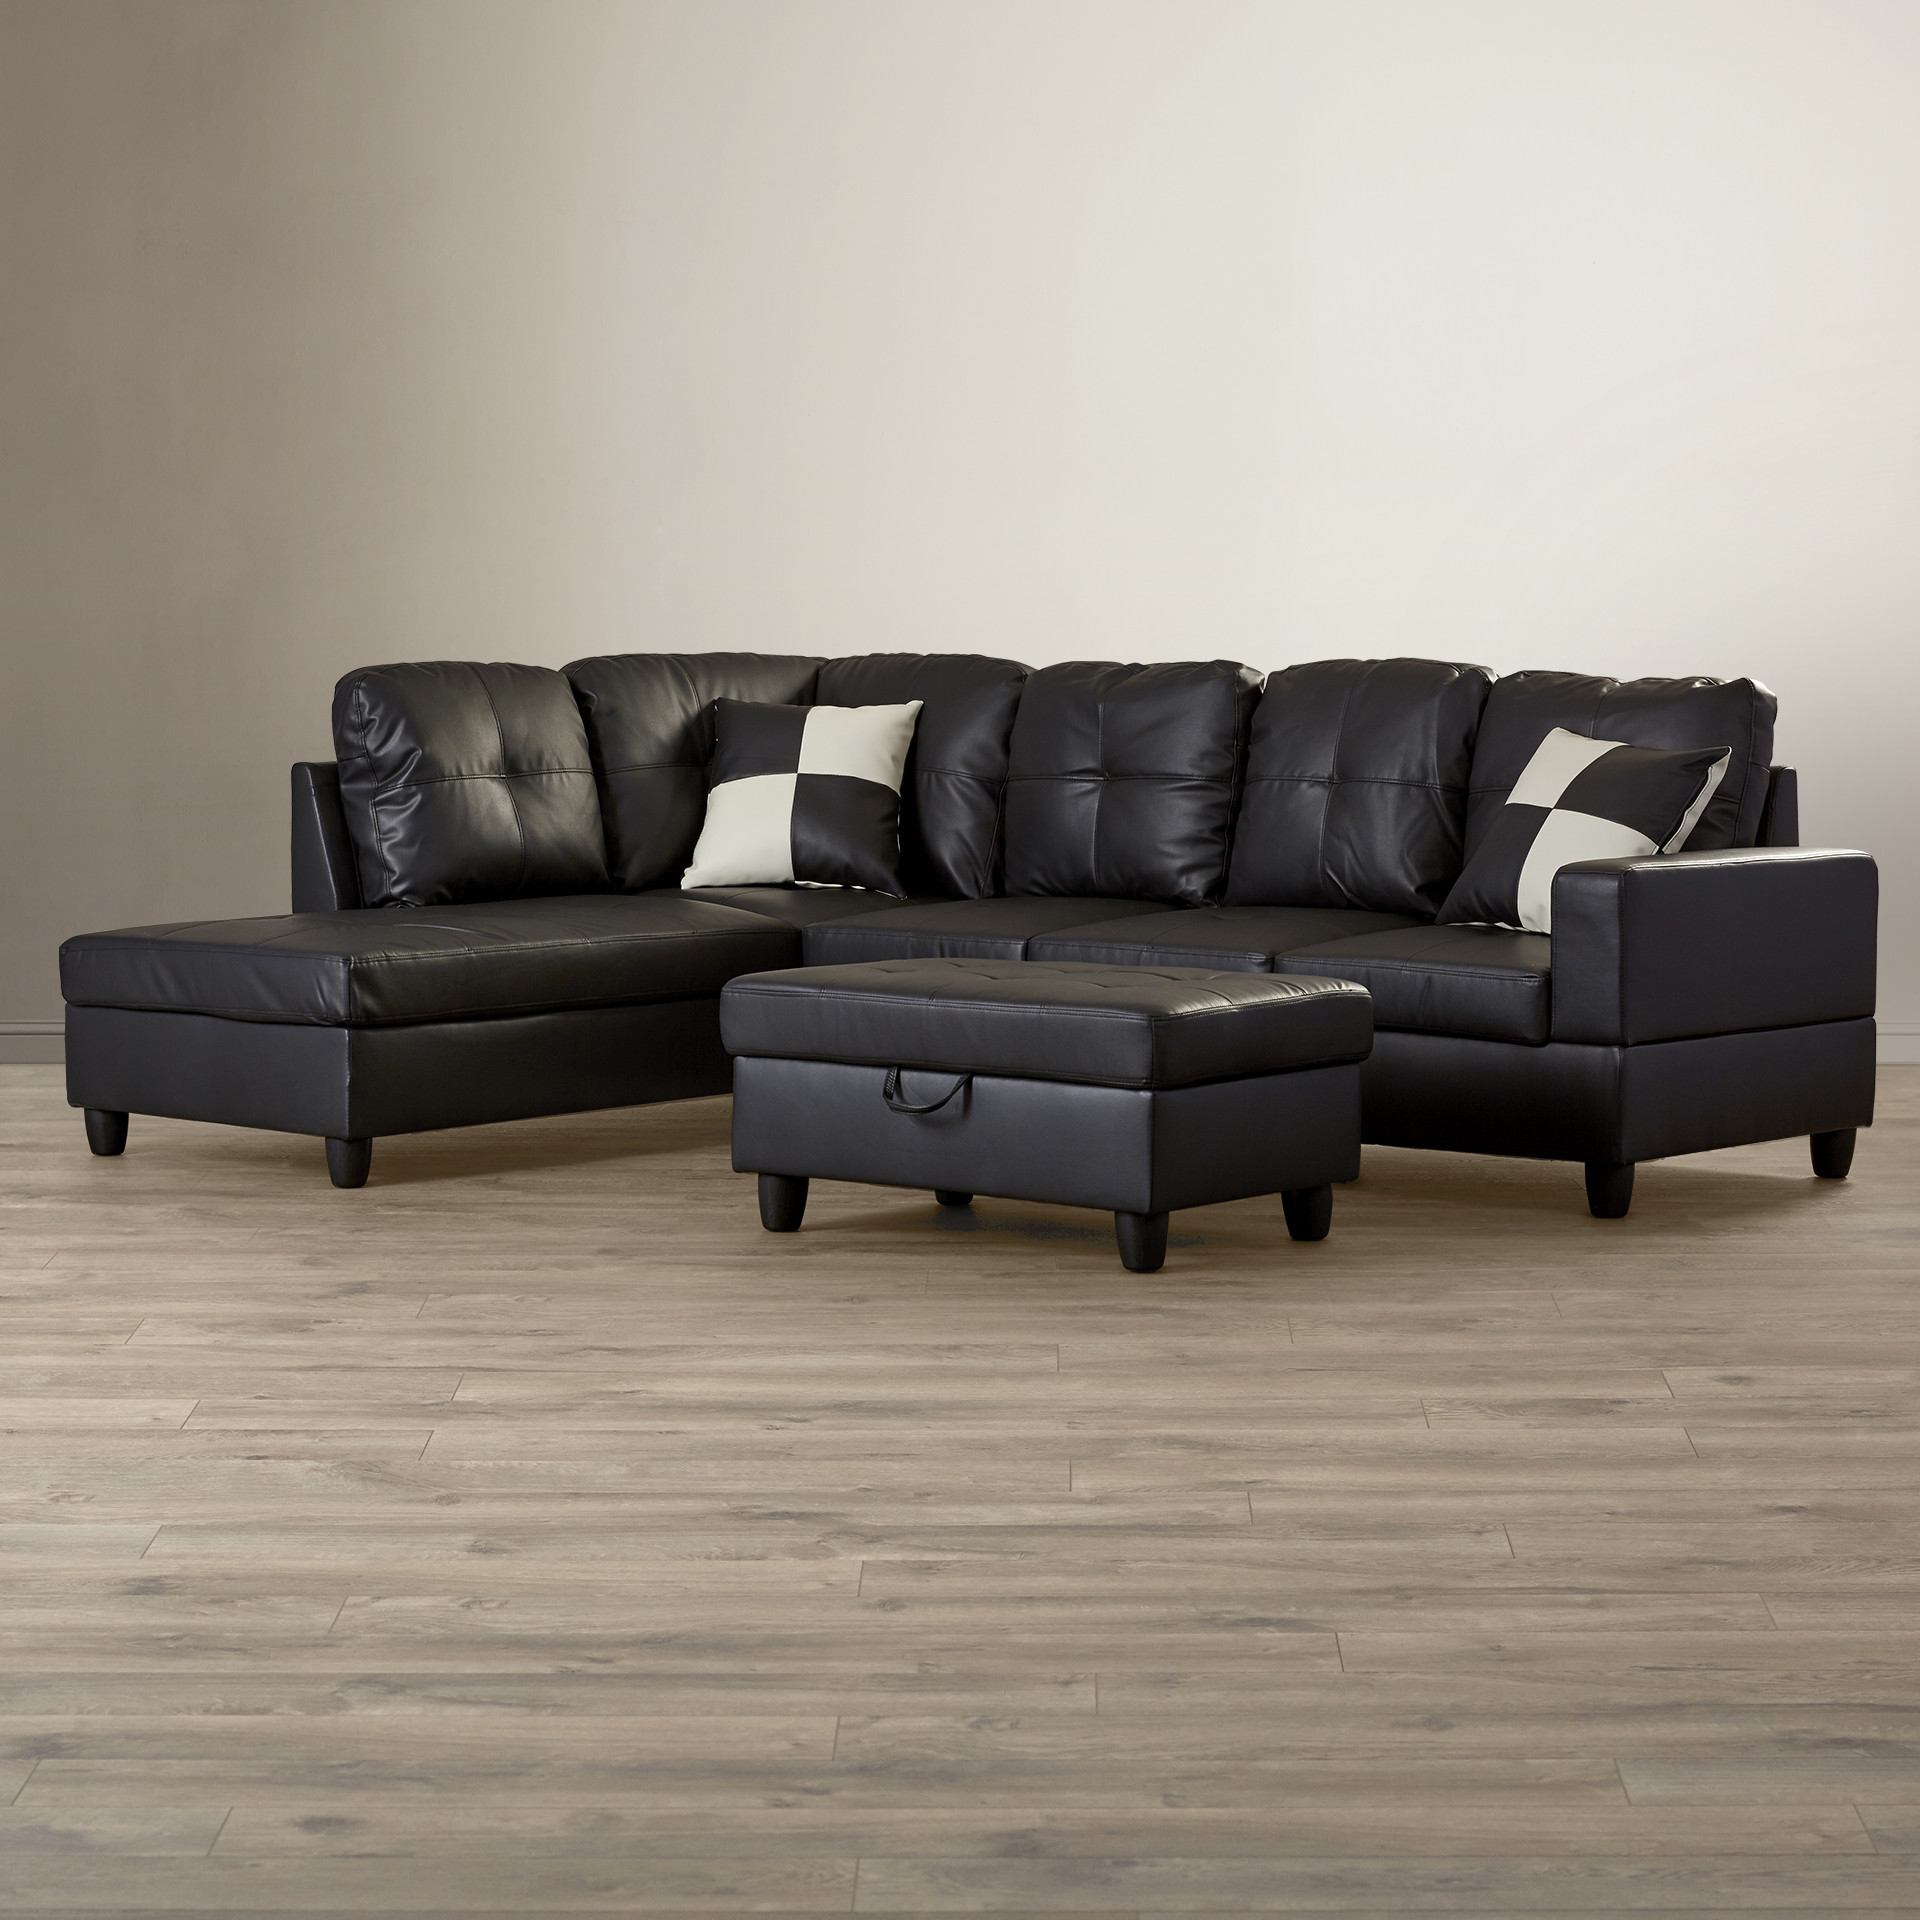 Modular Sectional | Microfiber Sectional | Large Sectional Sofas